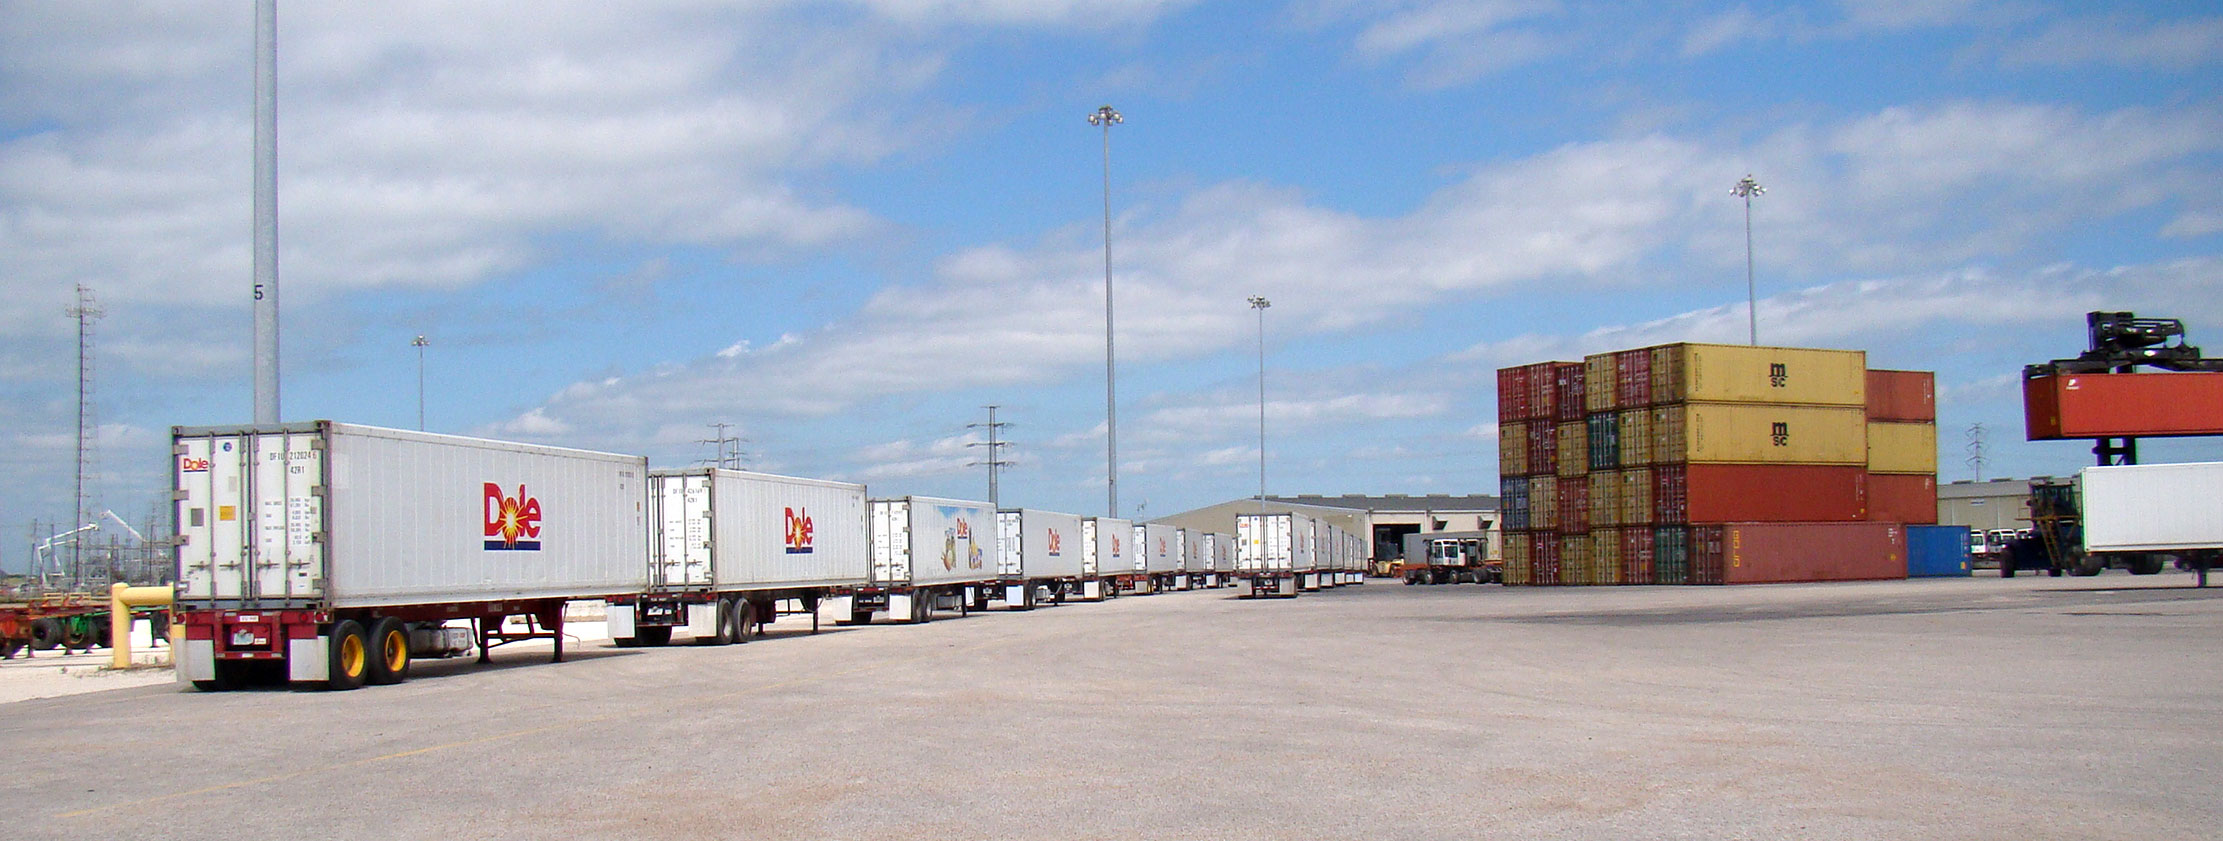 infrastructure at port freeport tx